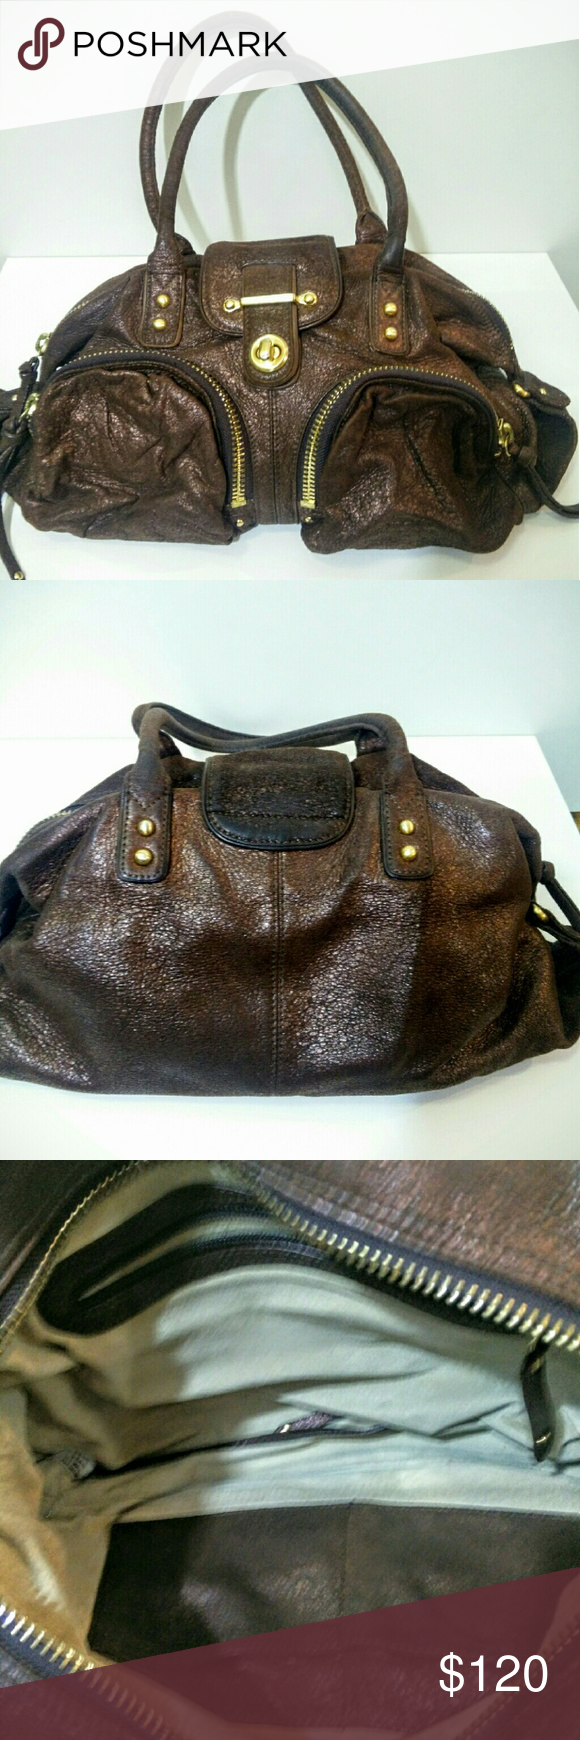 Hcl handcrafted leather goods - Botkier Bronze Bianca Leather Bag Authentic And Beautiful Bronze Leather Botkier Bag Gently Used And